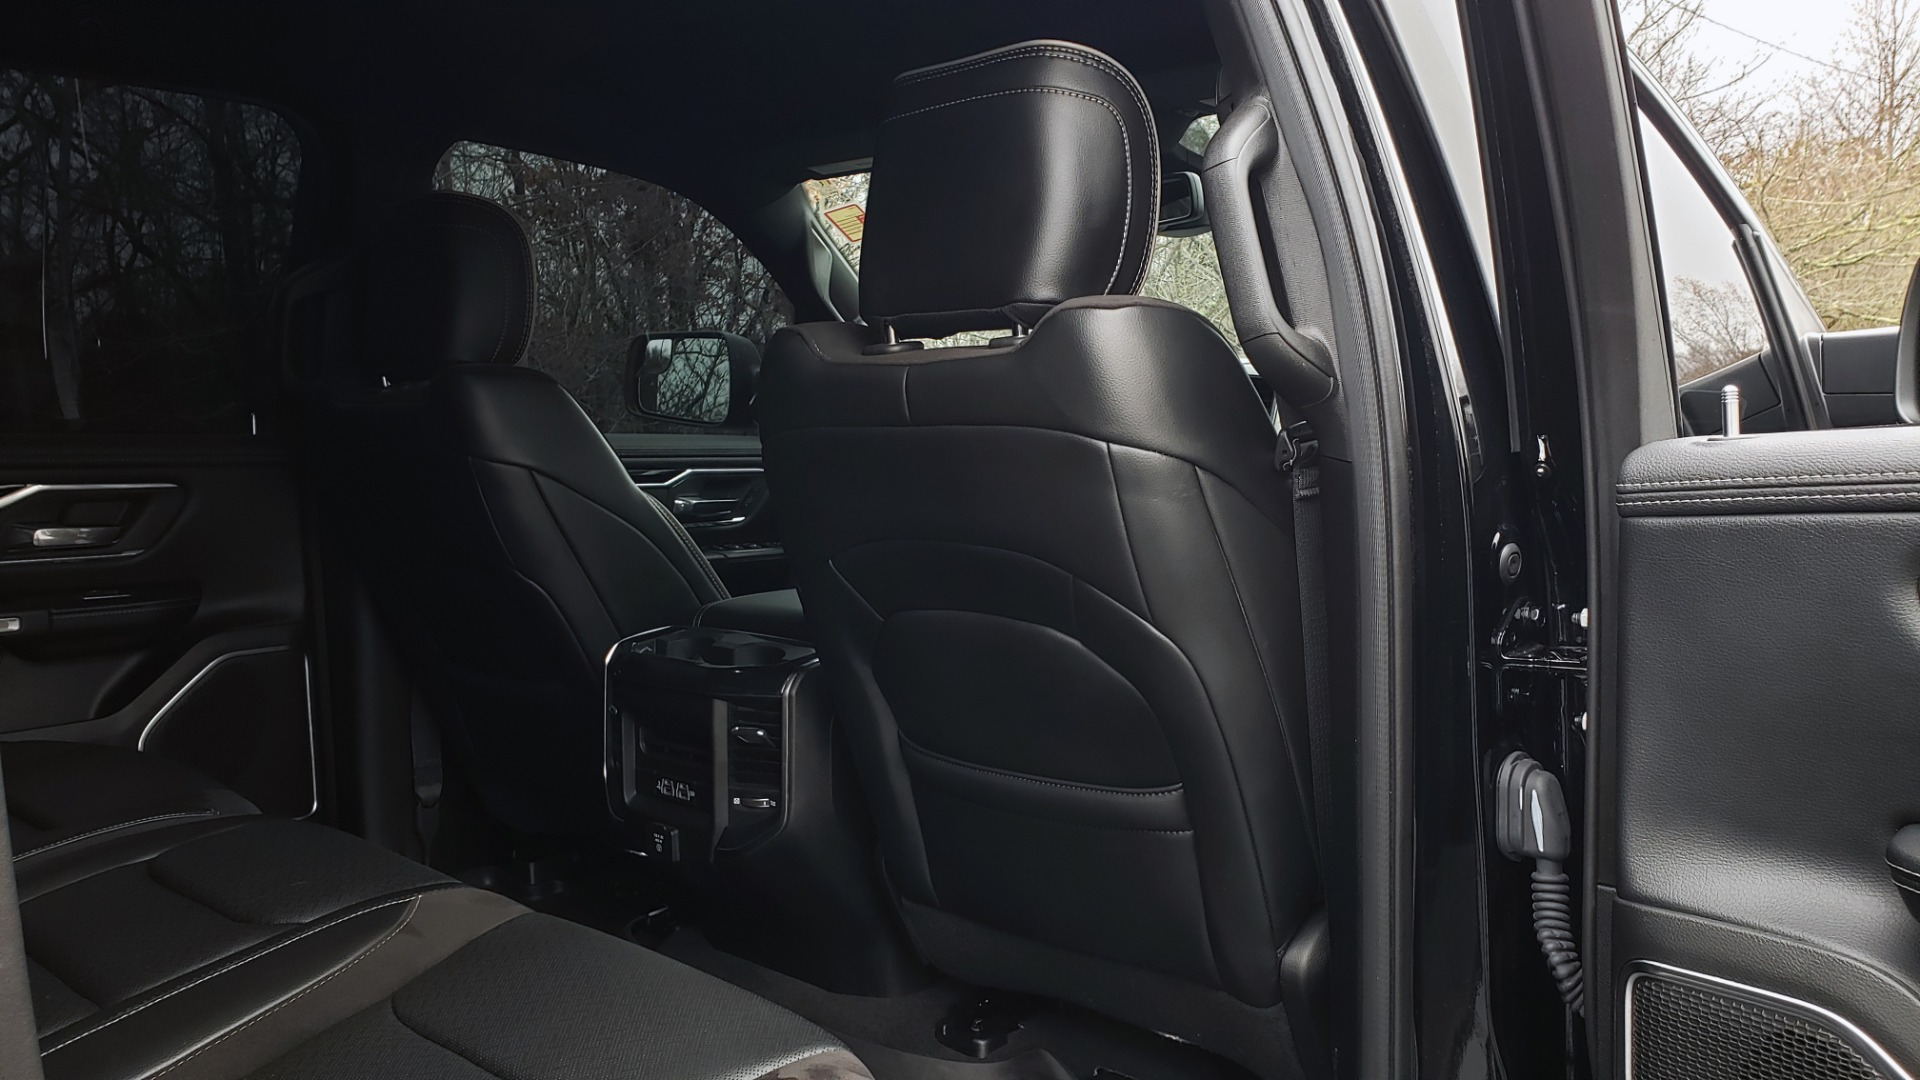 Used 2019 Ram 1500 LARAMIE SPORT / 2WD / 5.7L HEMI / NAV / BLIND SPOT / HTD STS / REARVIEW for sale Sold at Formula Imports in Charlotte NC 28227 93